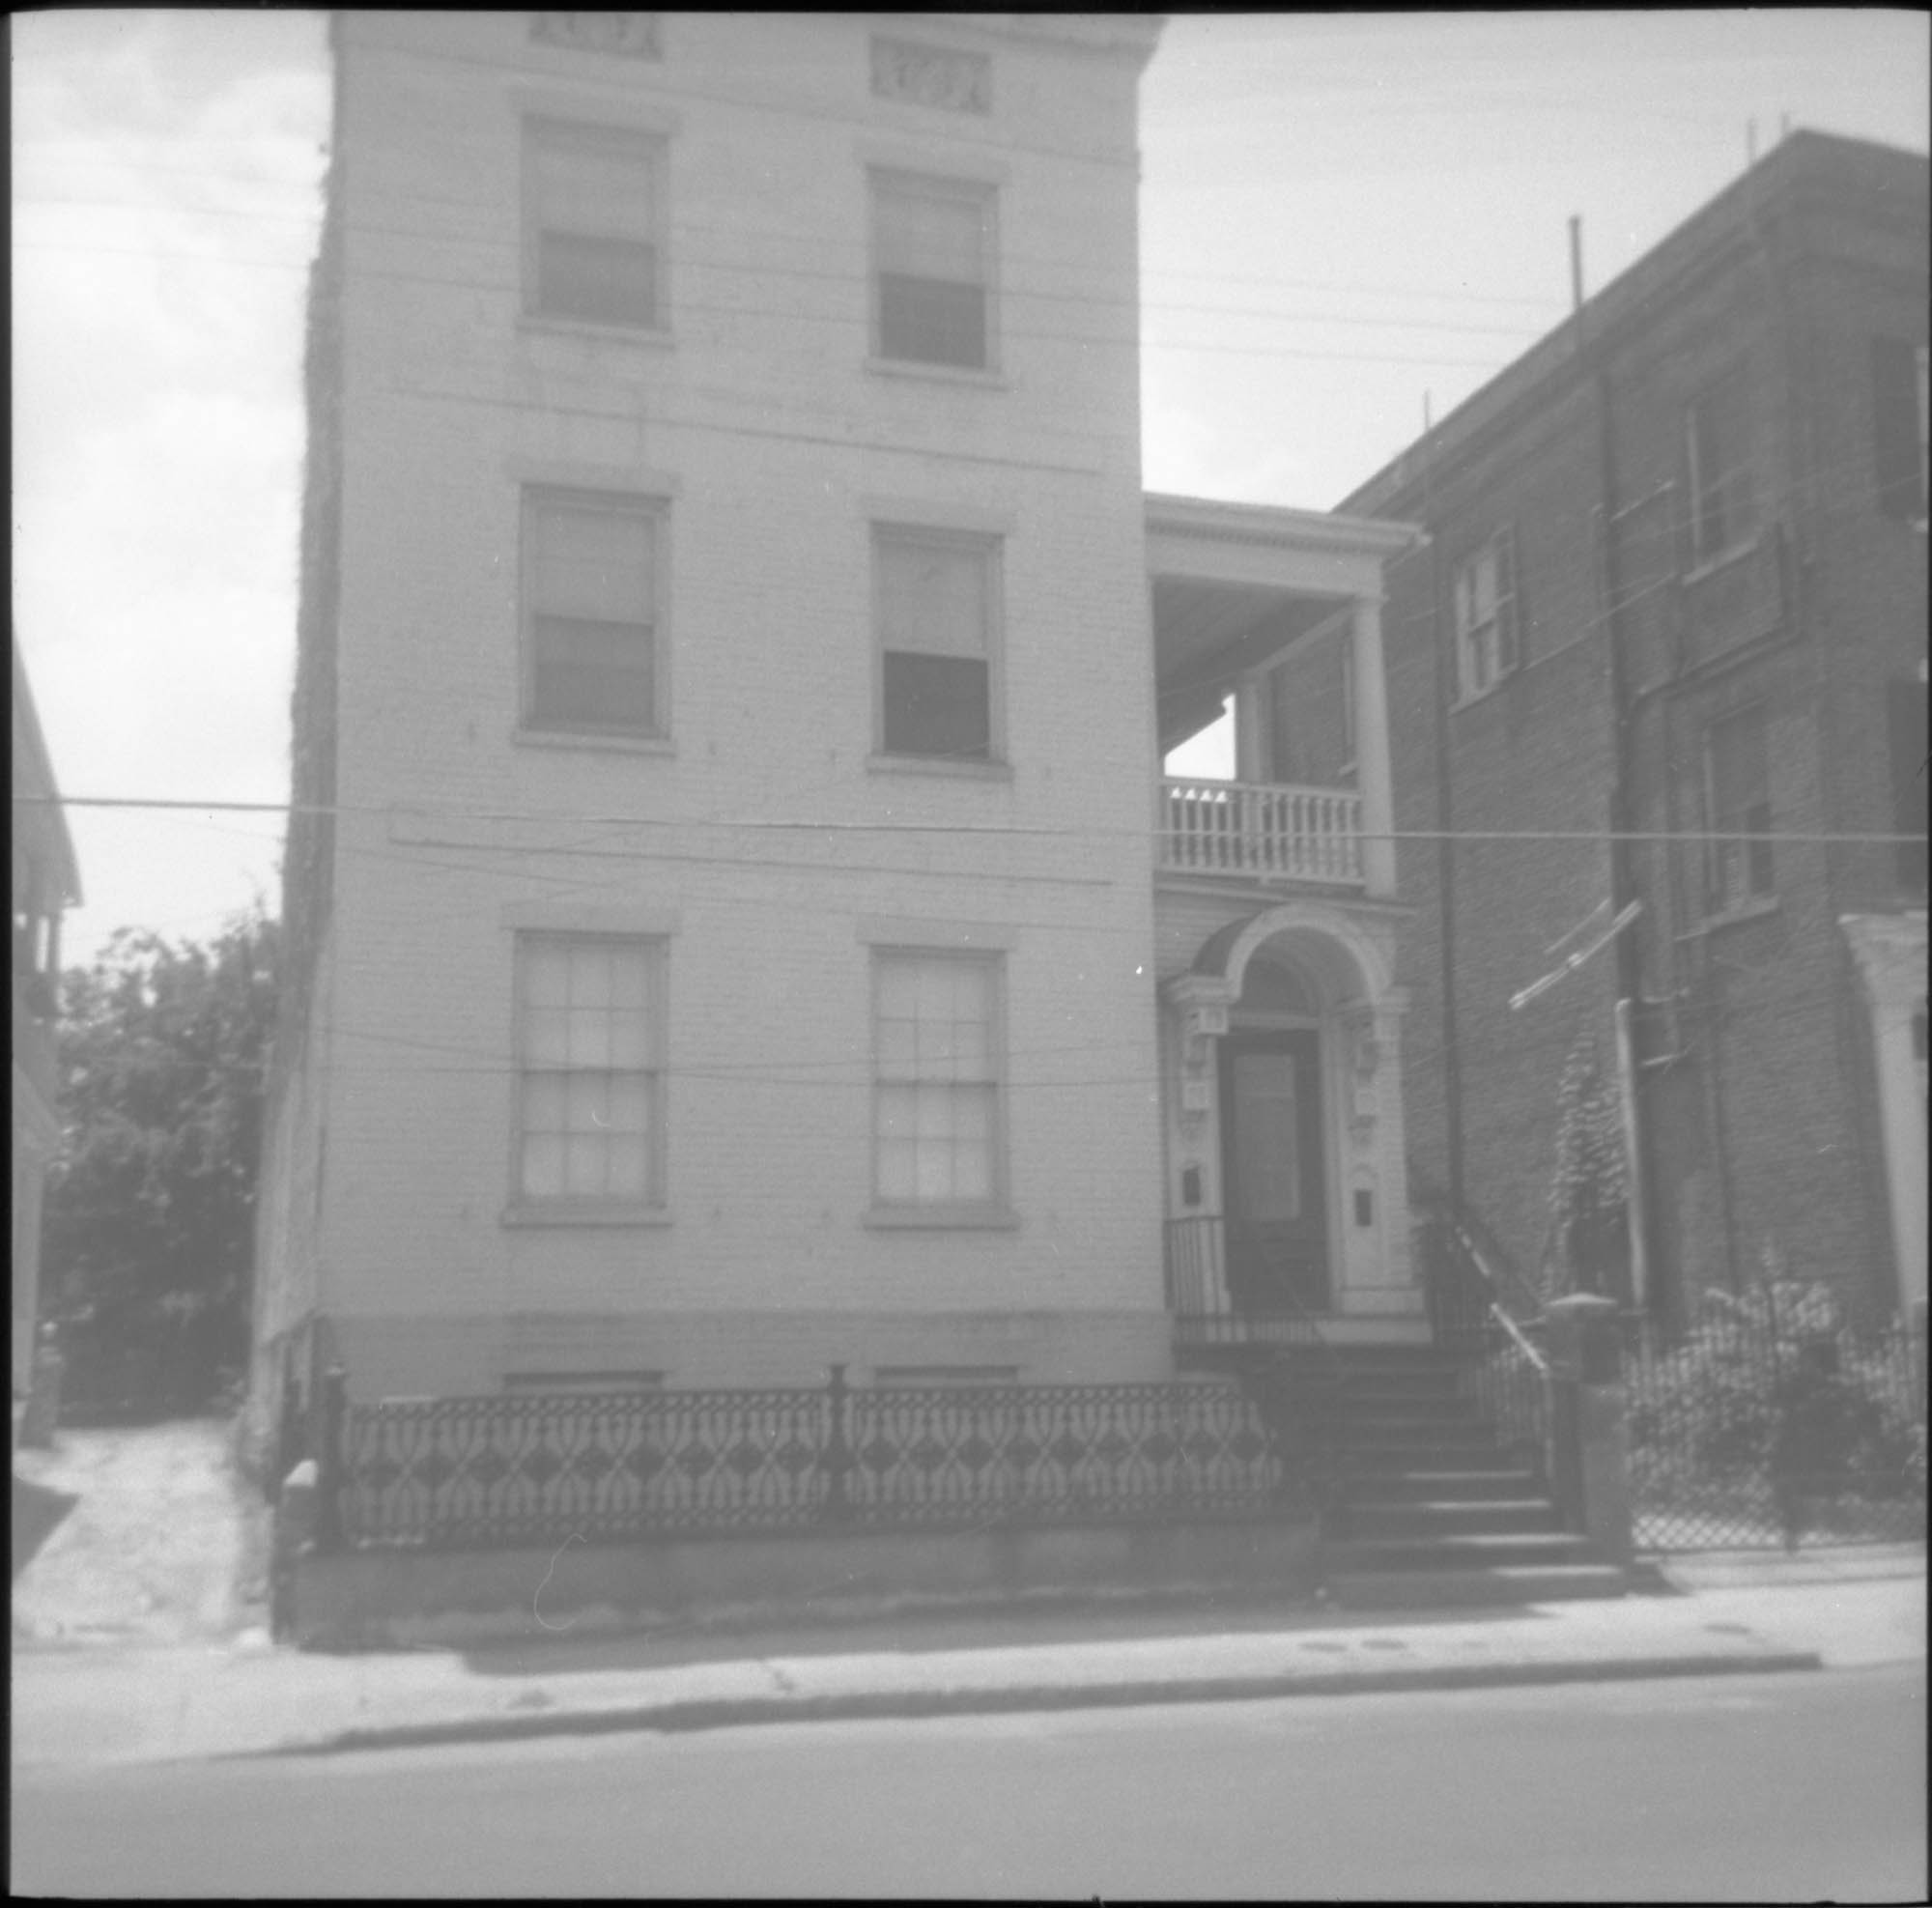 35 Hasell Street